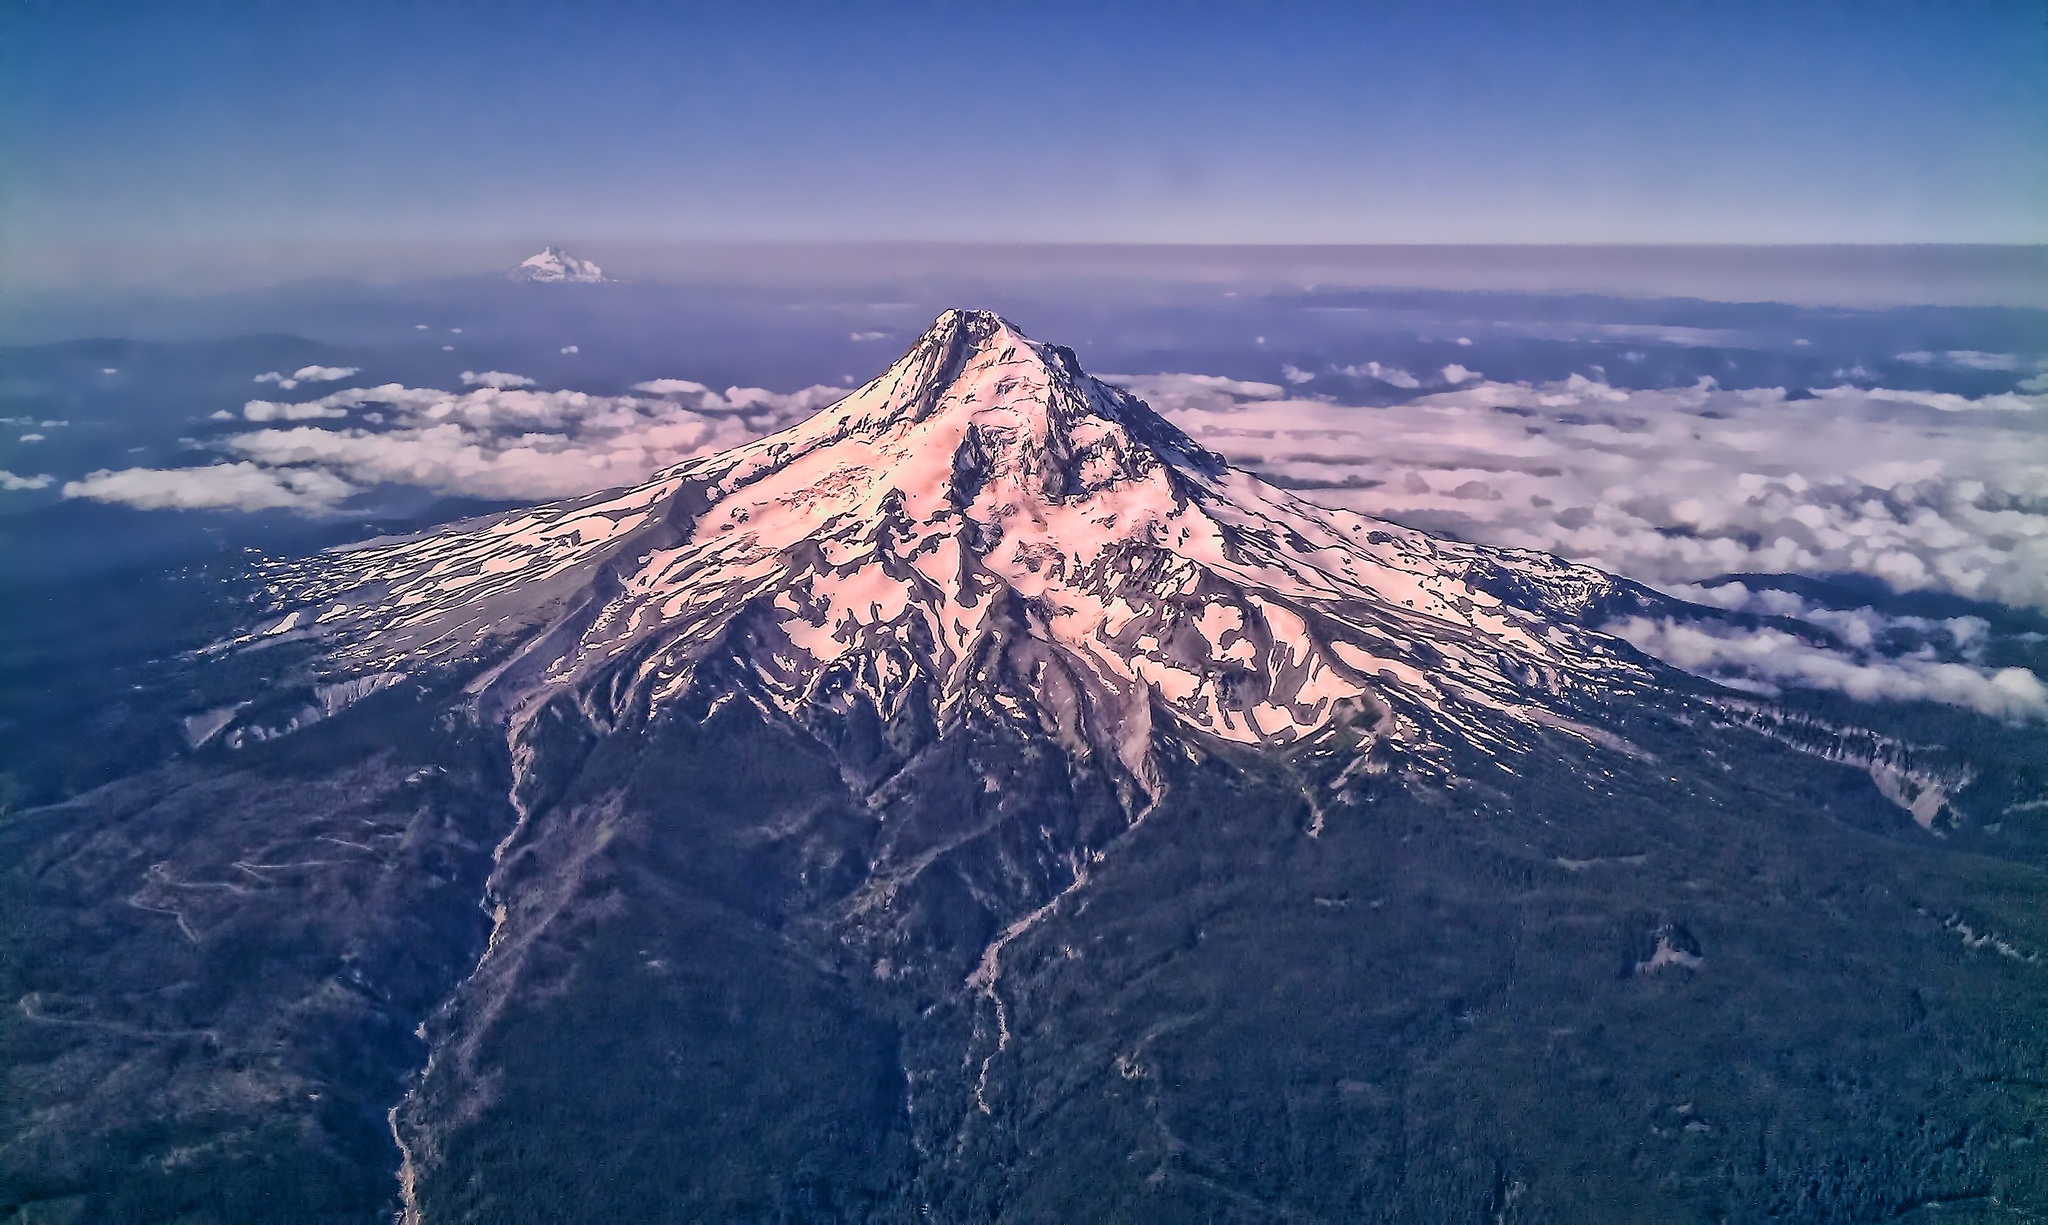 An aerial photograph of snow-capped Mount Hood near Portland, Oregon.